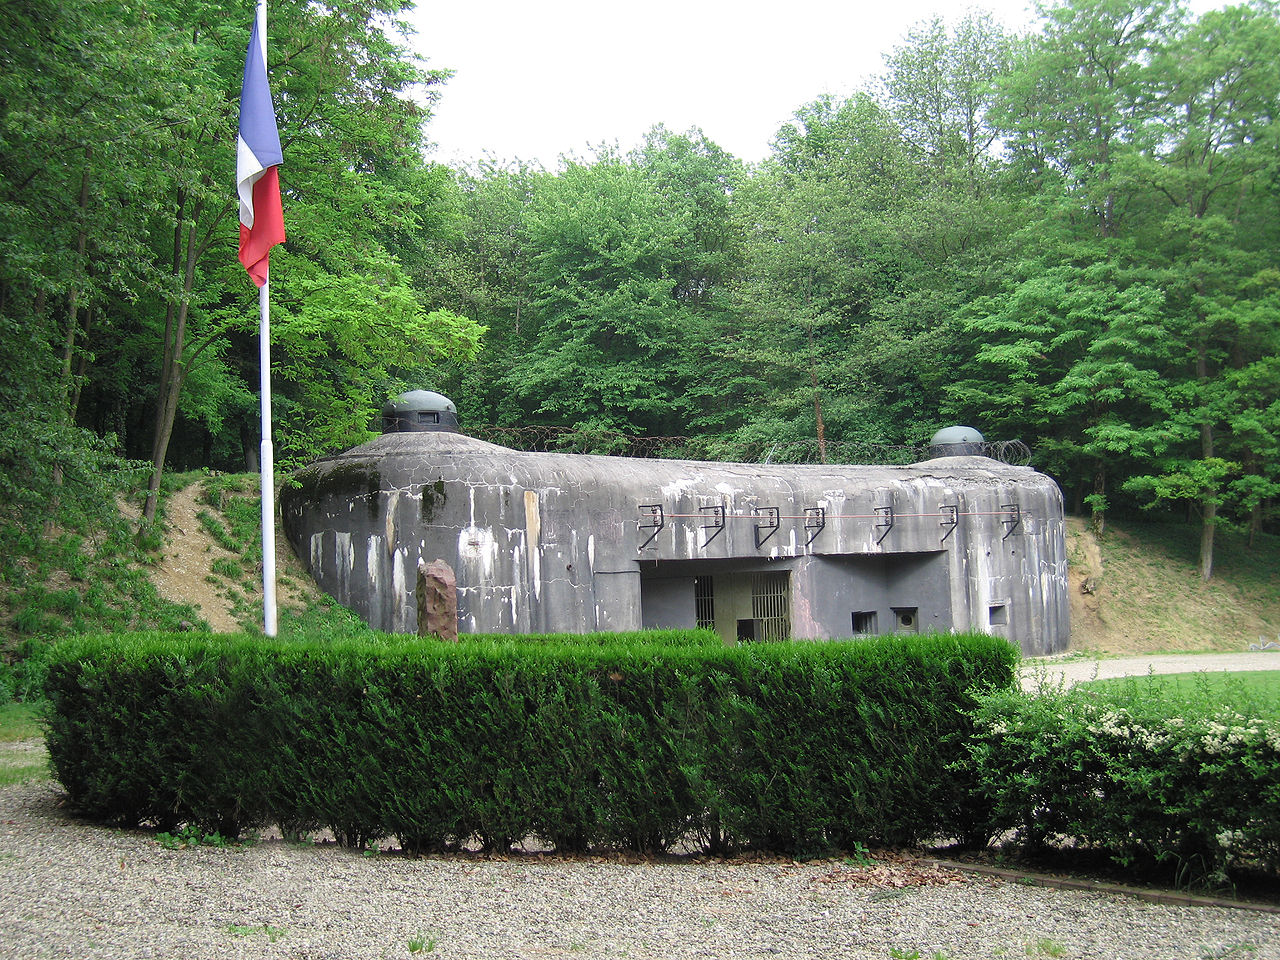 https://upload.wikimedia.org/wikipedia/commons/thumb/c/c9/Maginot_line_1.jpg/1280px-Maginot_line_1.jpg